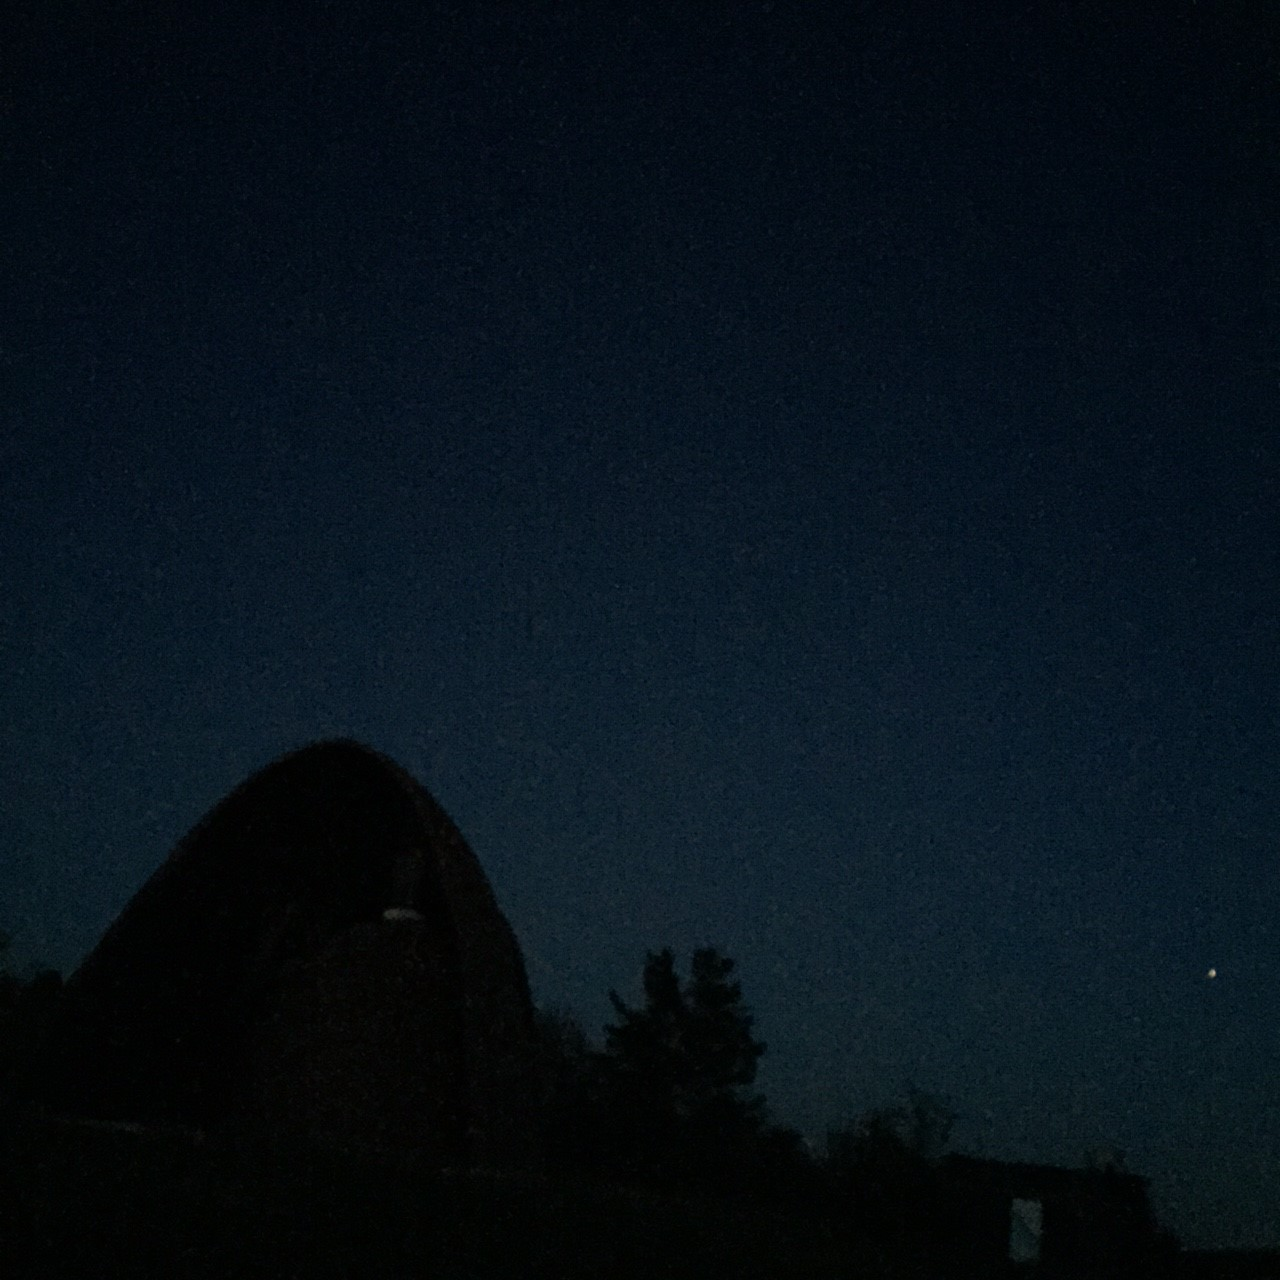 Mars in the West, Moon overhead (not pictured)